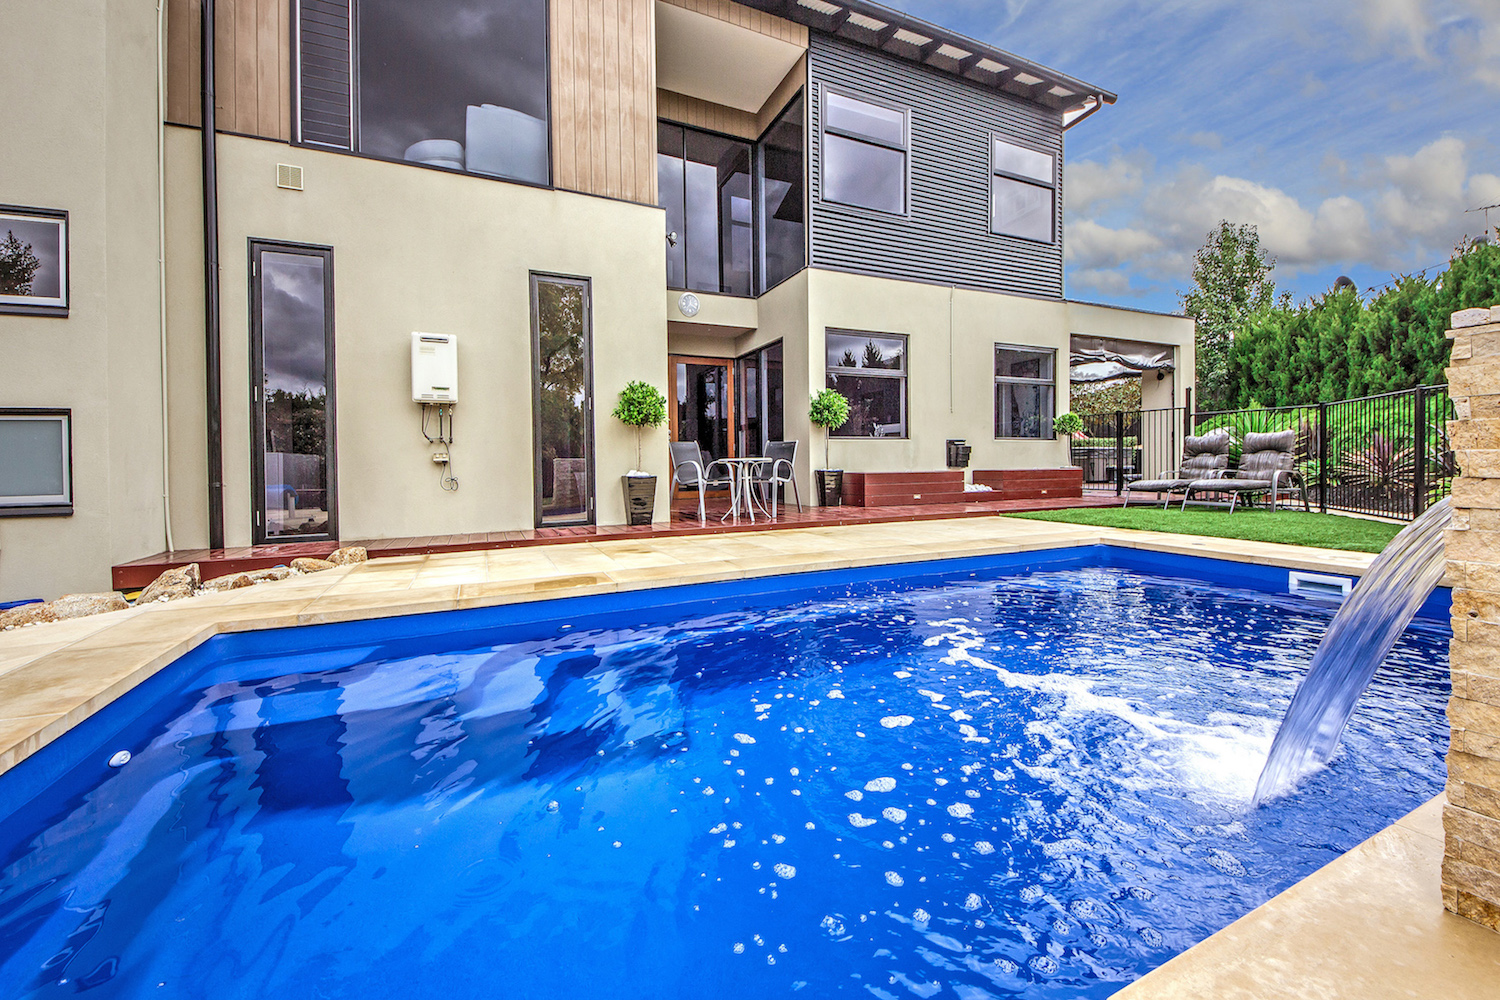 Rainwise Pools Melbourne - Get Your Pool Summer Ready Pool Tips & Info